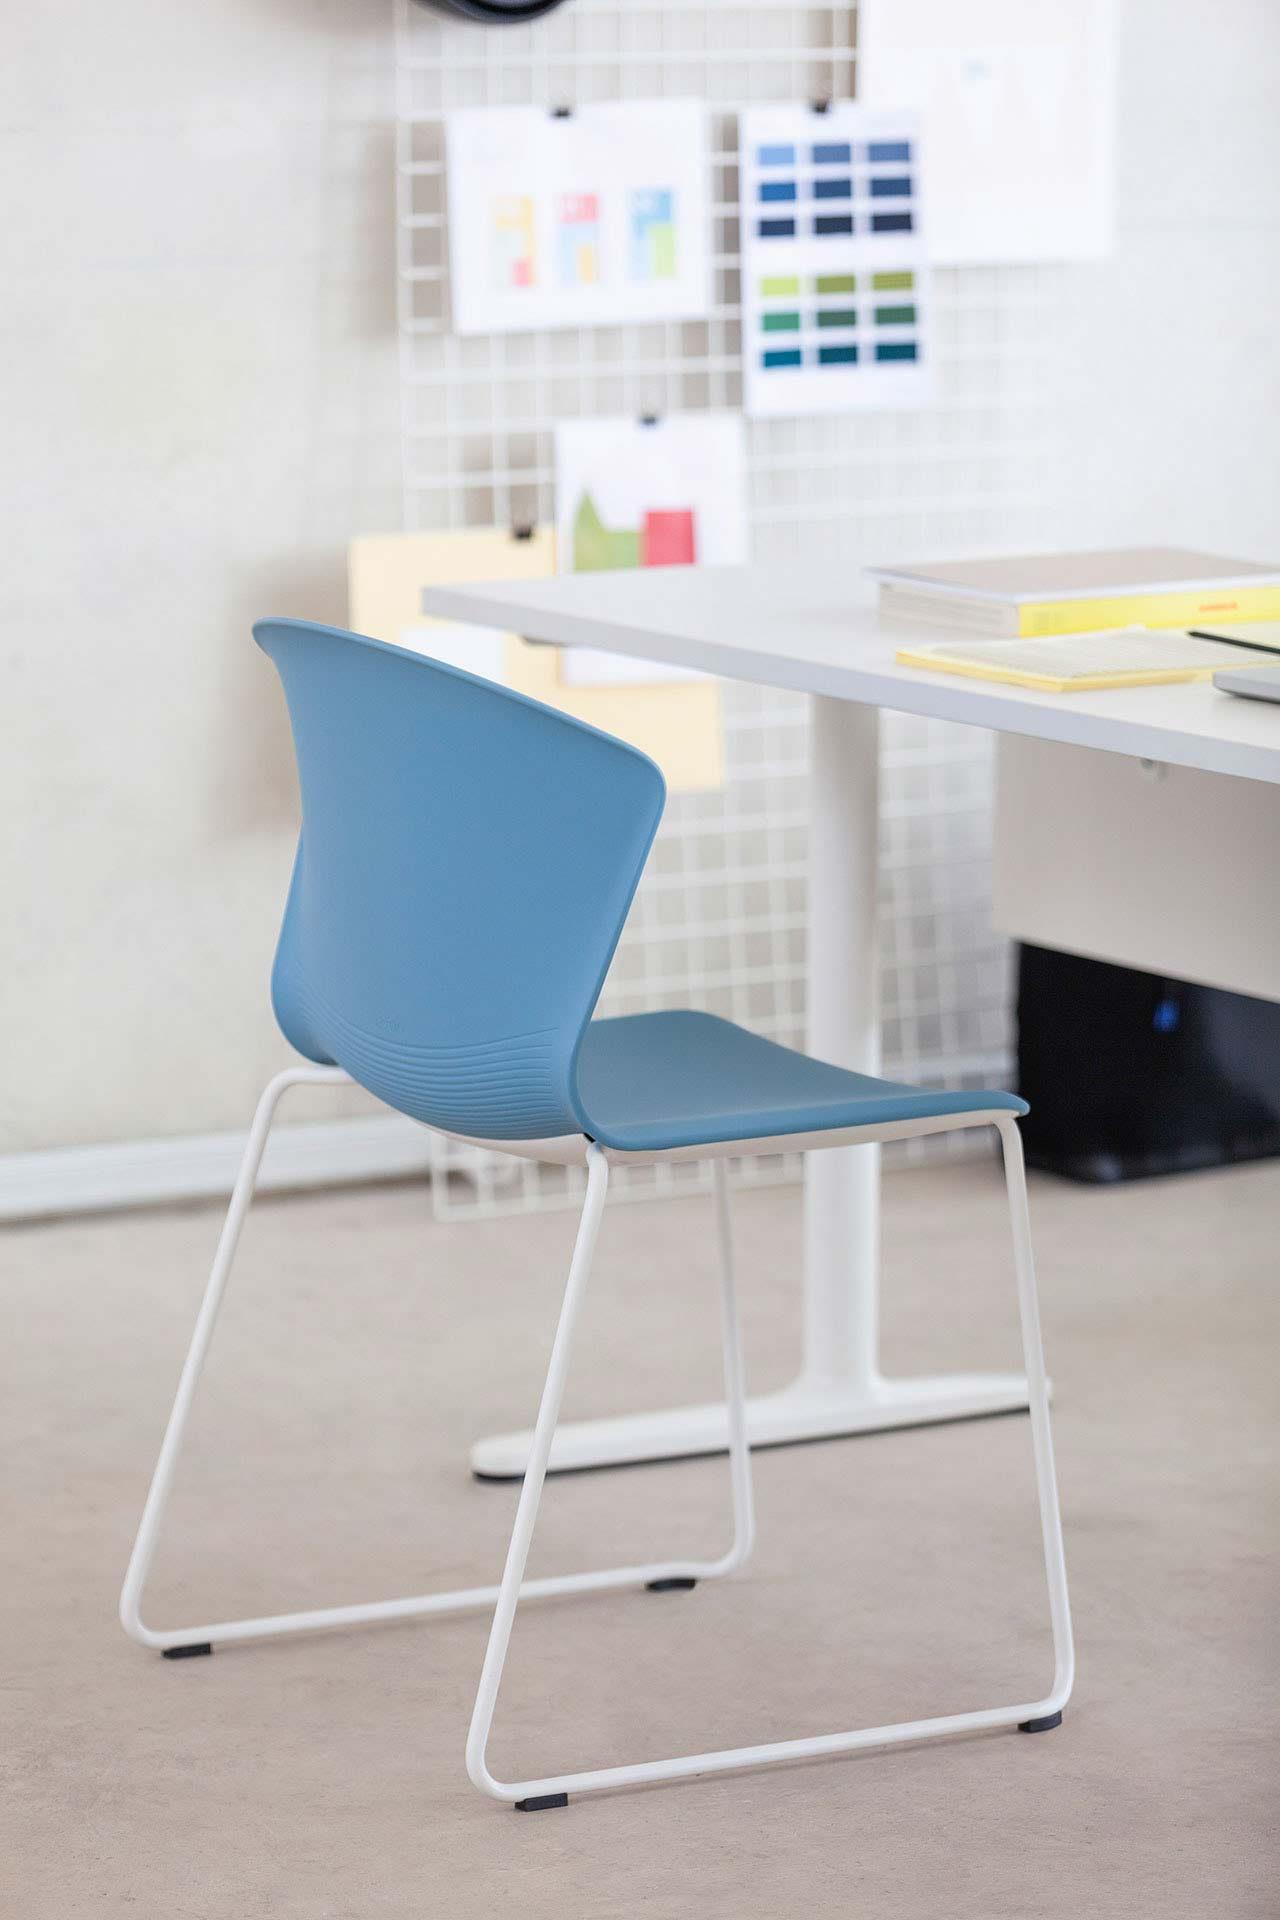 chair whass blue backrest armless talent desk assertive meeting organization appealing design variable functional efficient support elegant masof actiu